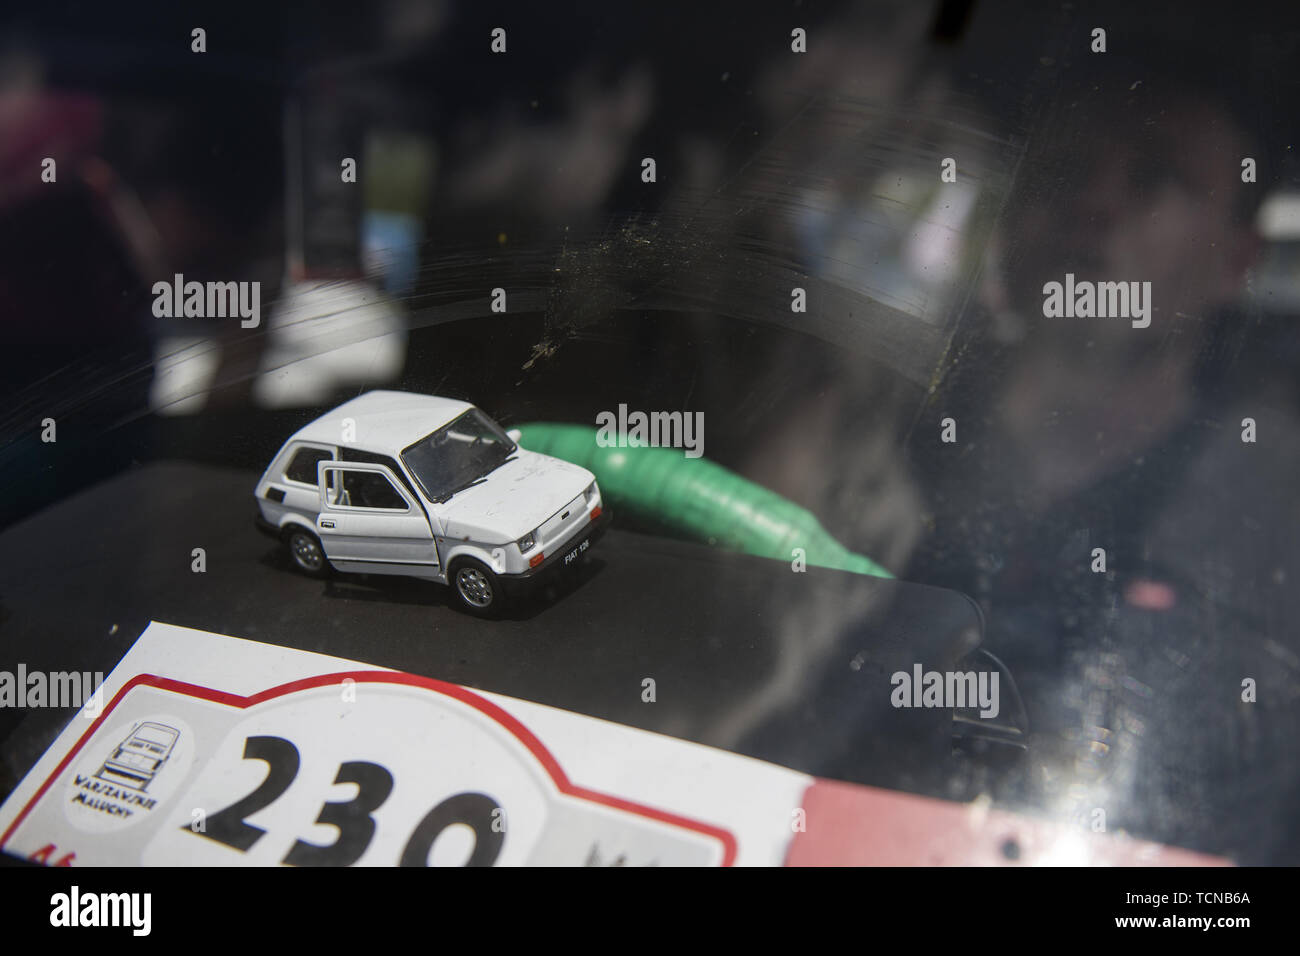 Toddler Car Dashboard Warsaw Mazowieckie Poland 8th June 2019 A Model Of A